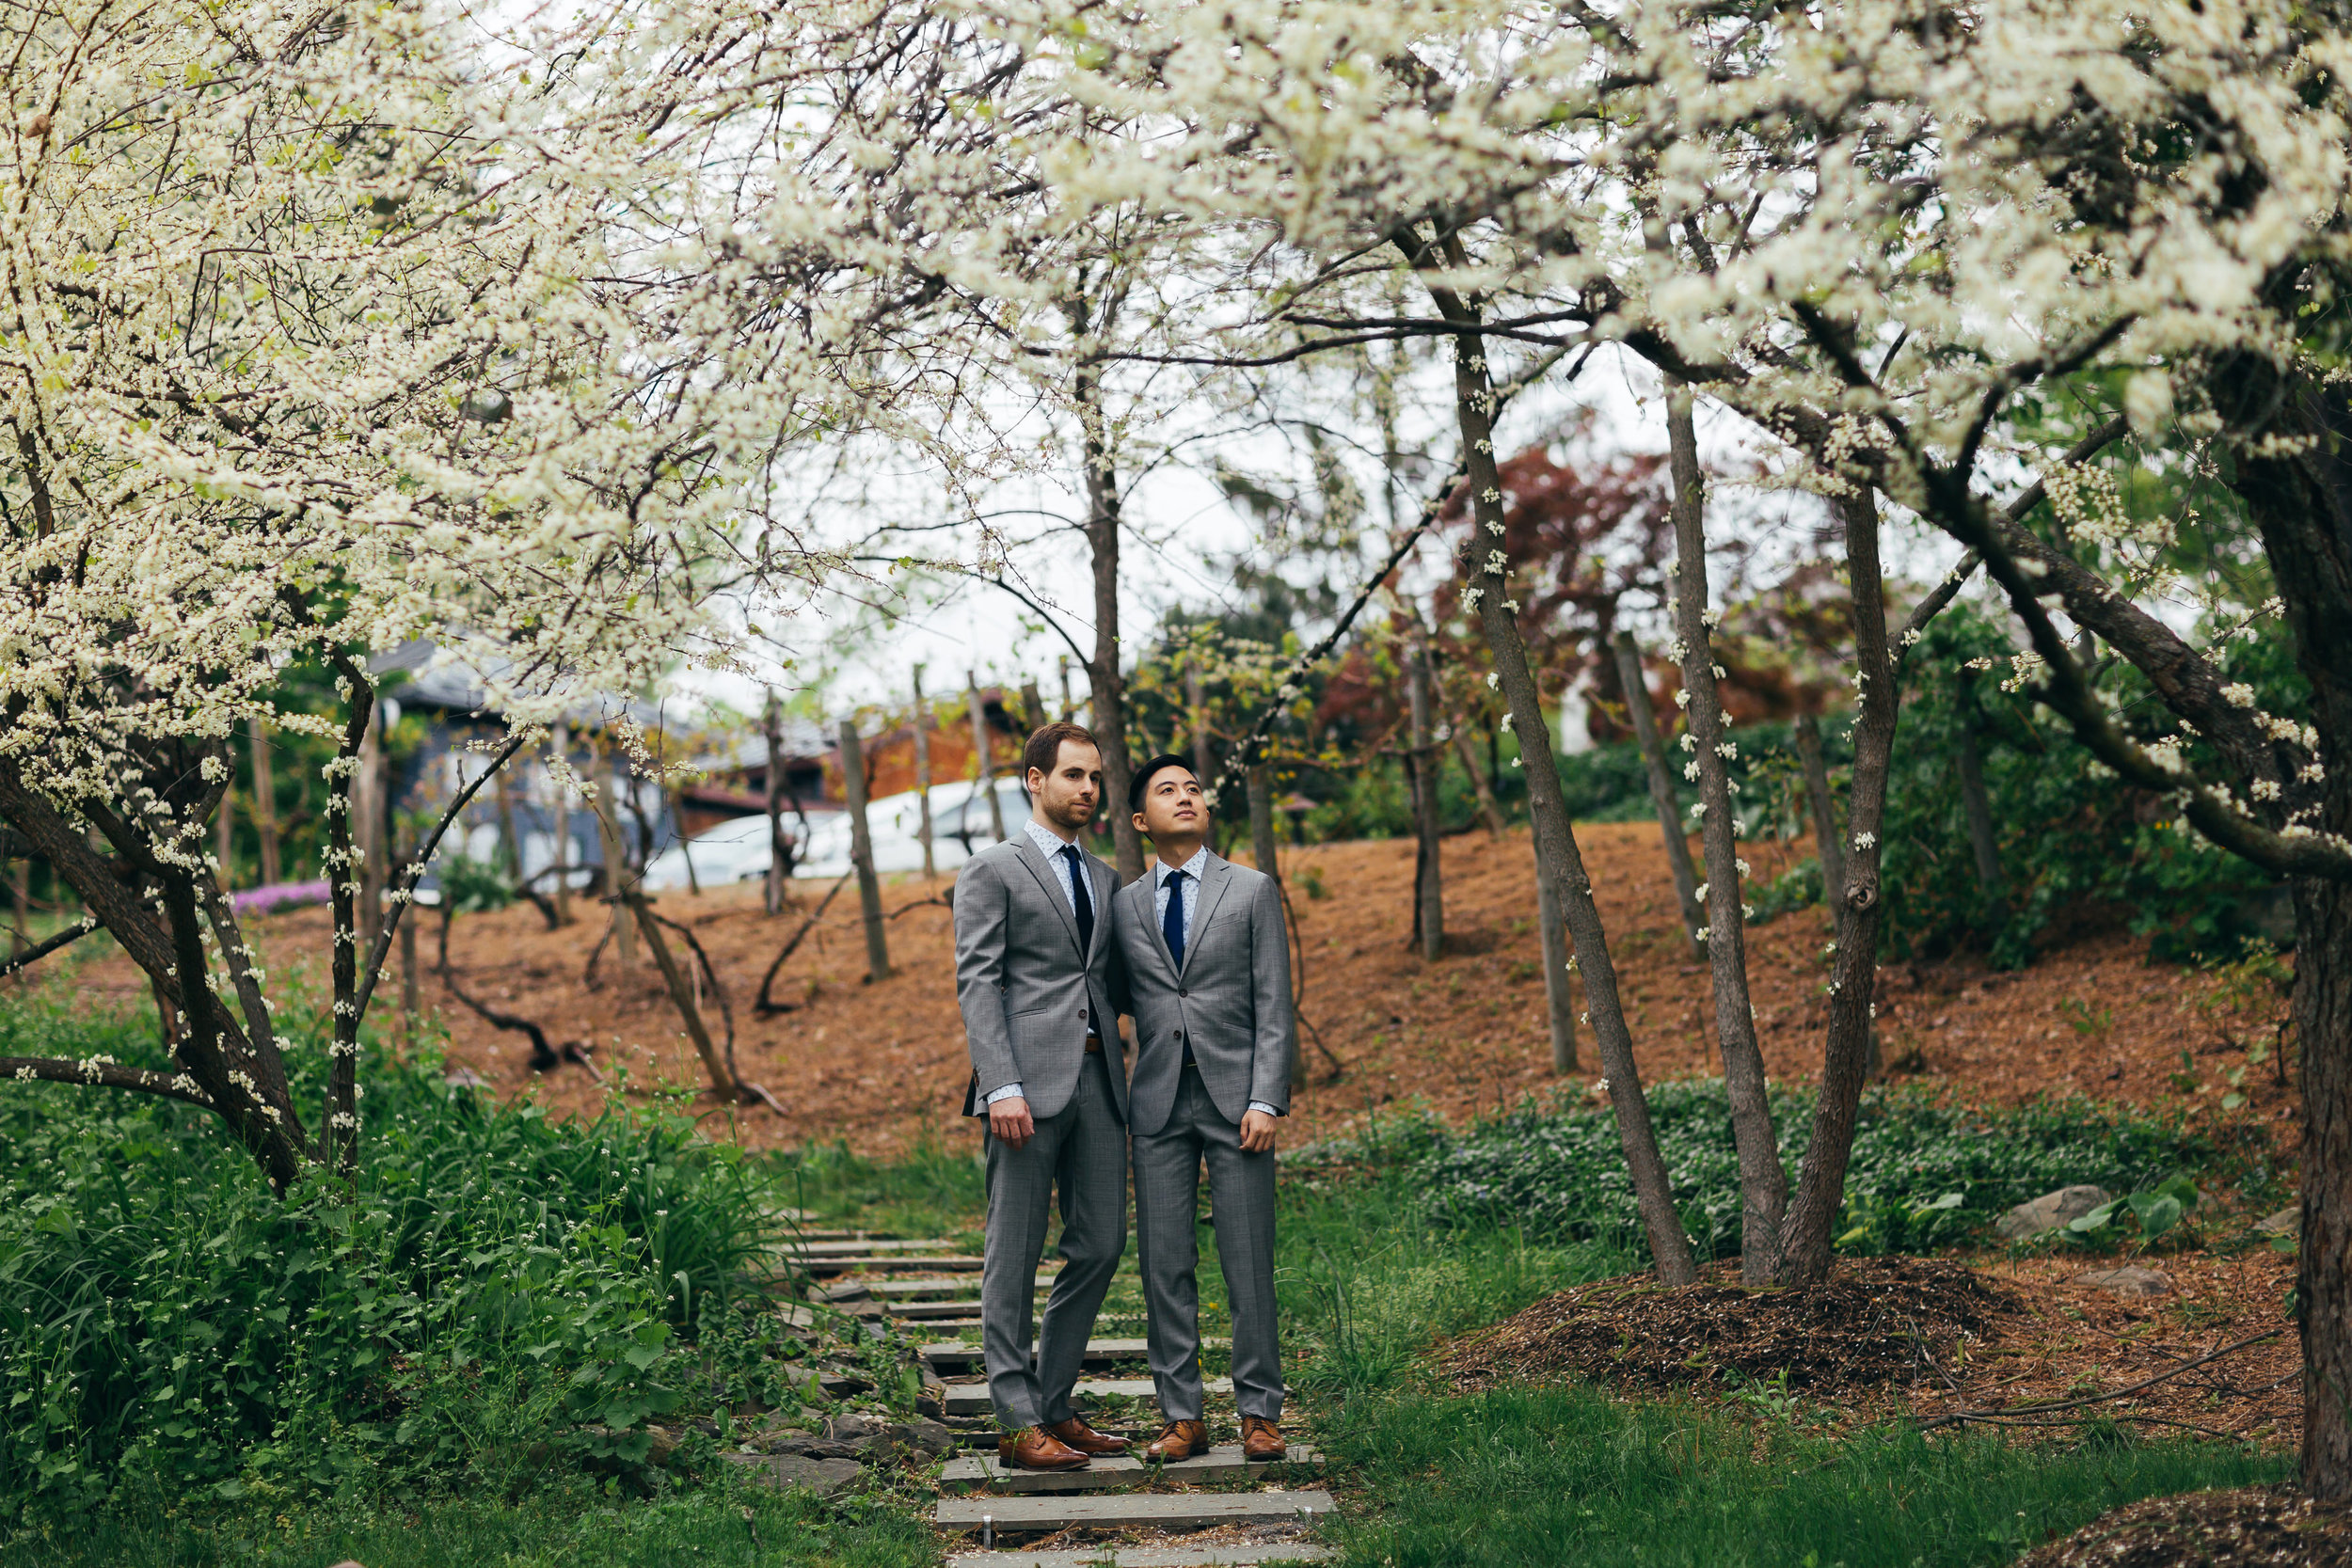 A beautiful aspect of their wedding in the Hudson River valley was that there were all these cherry blossoms in bloom around the property, which just added a wonderful spring feel to all of Chad and Eddies photos. As you can see from this photo, we made sure they had some time to walk around the property and enjoy themselves, as they got ready for their same sex wedding.